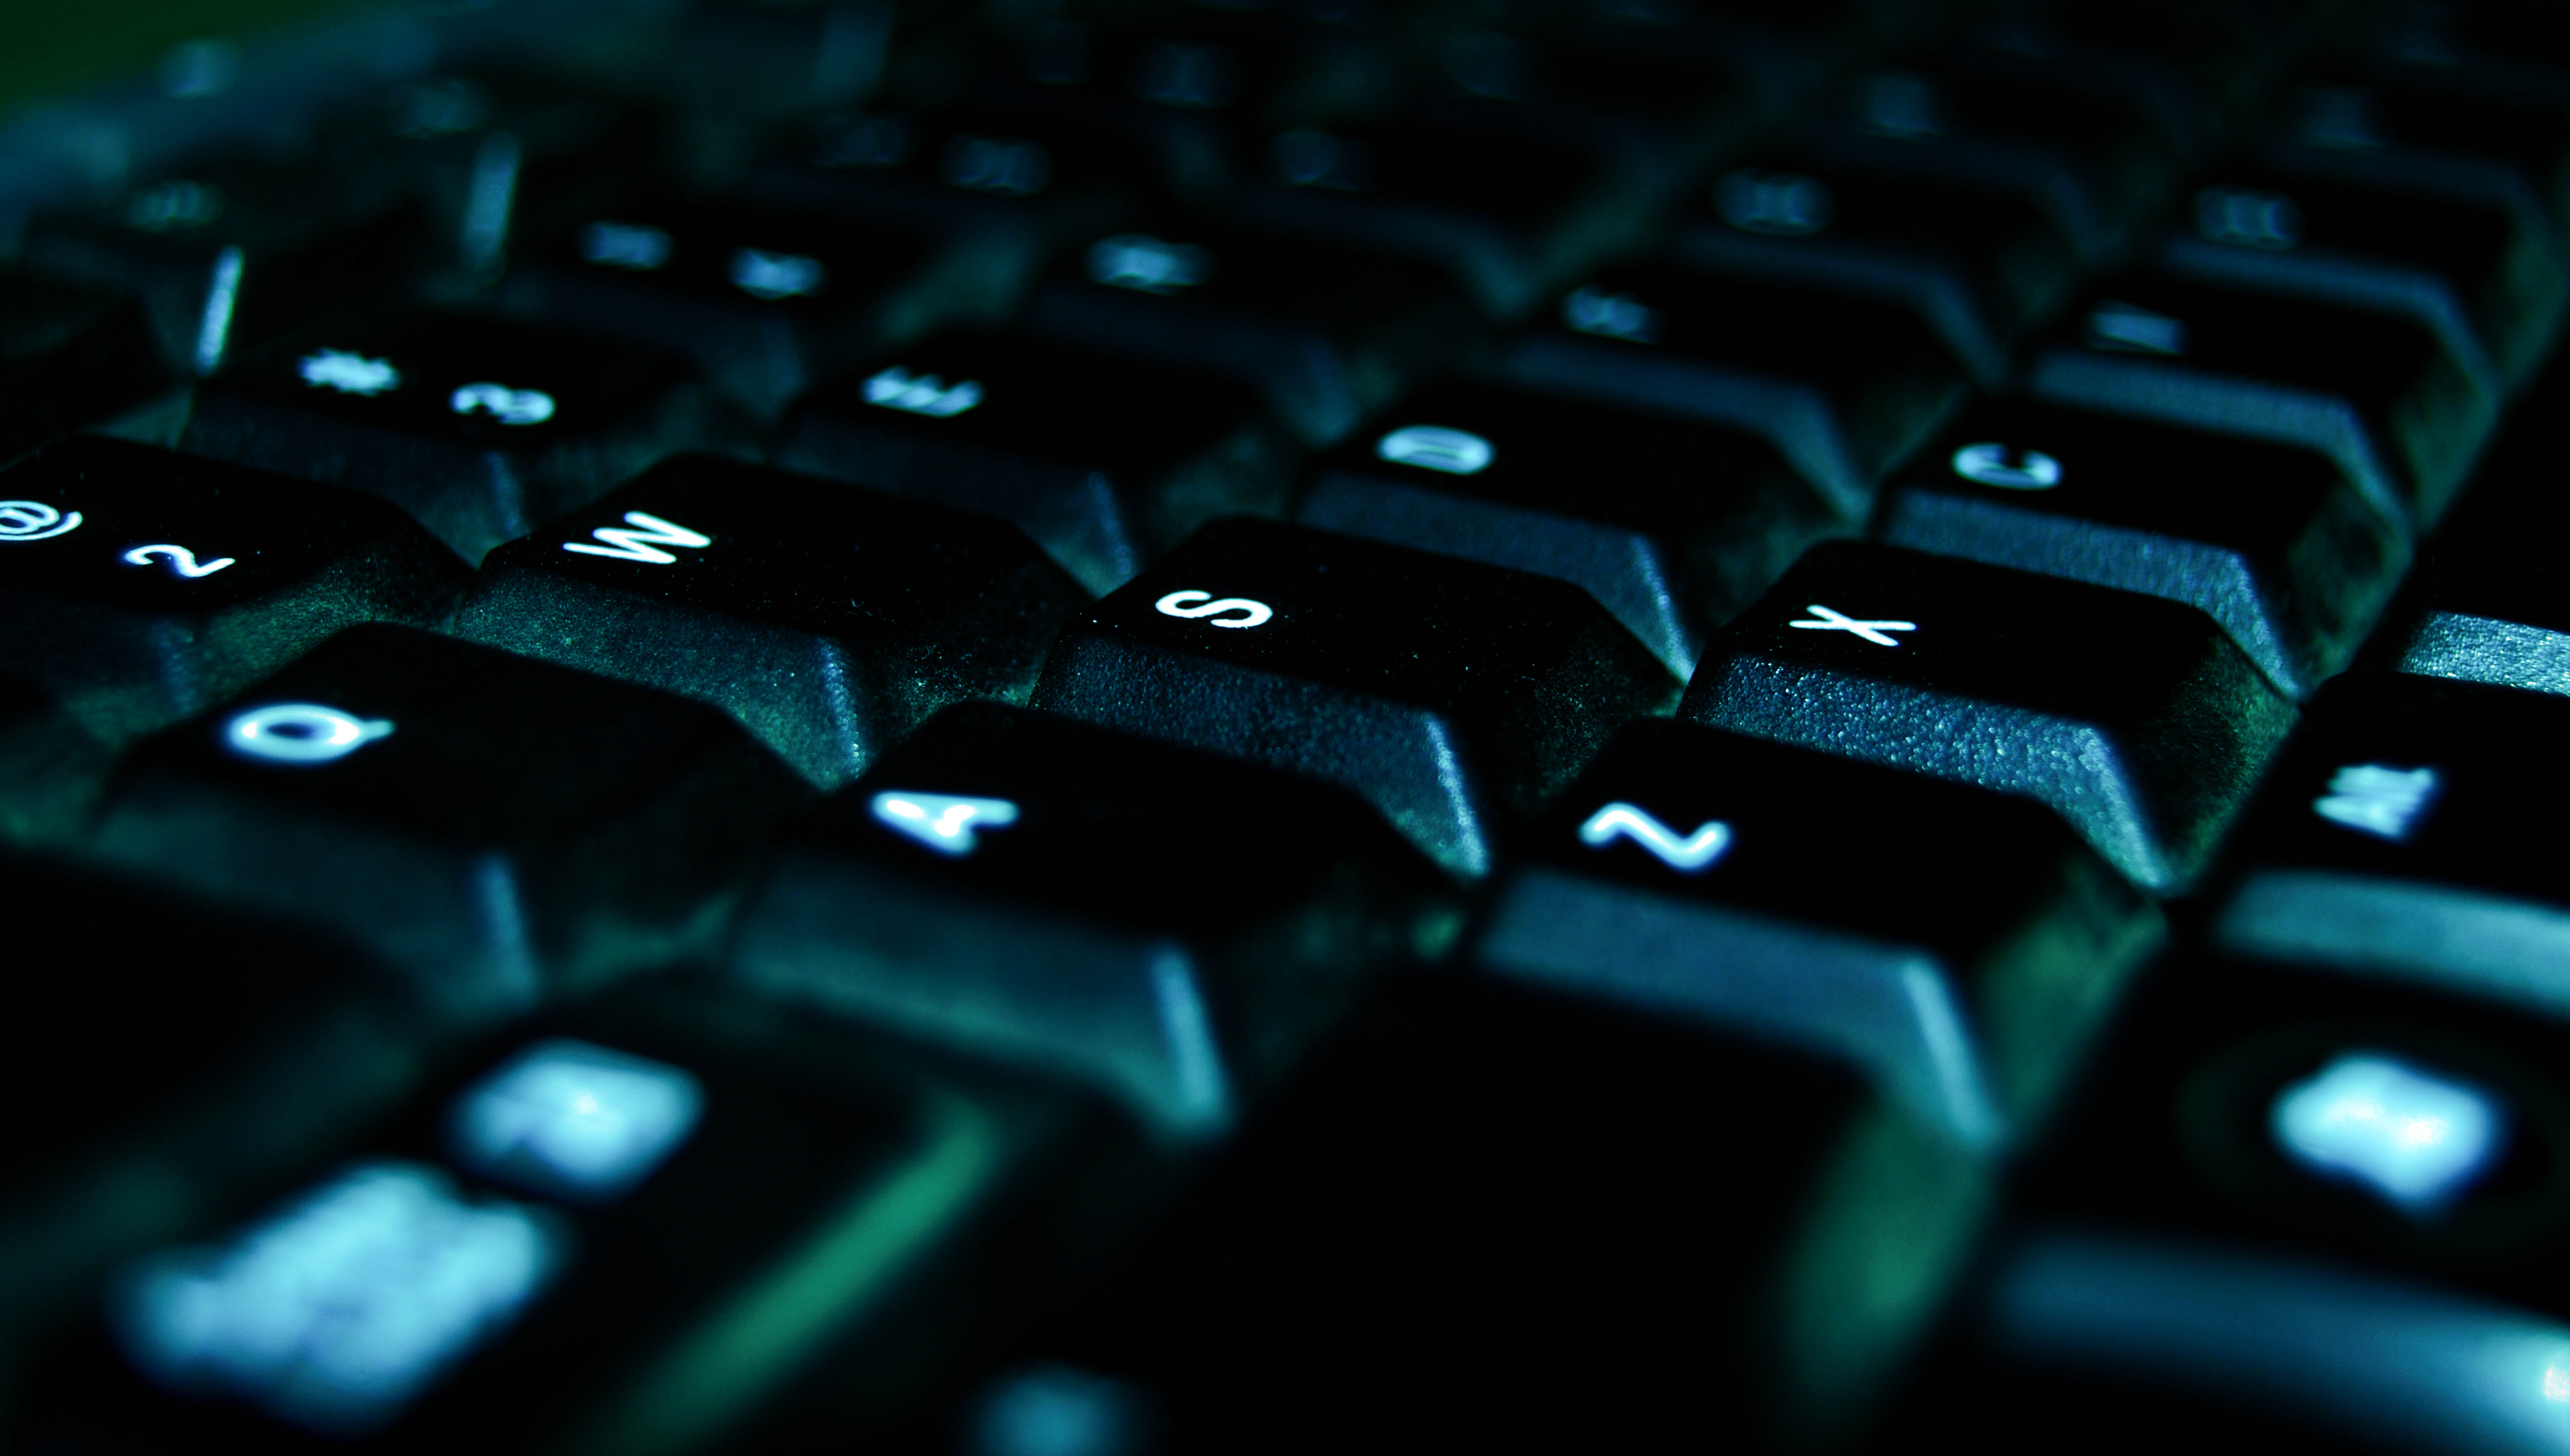 Keyboard Images And Hd Wallpapers High Resolution All